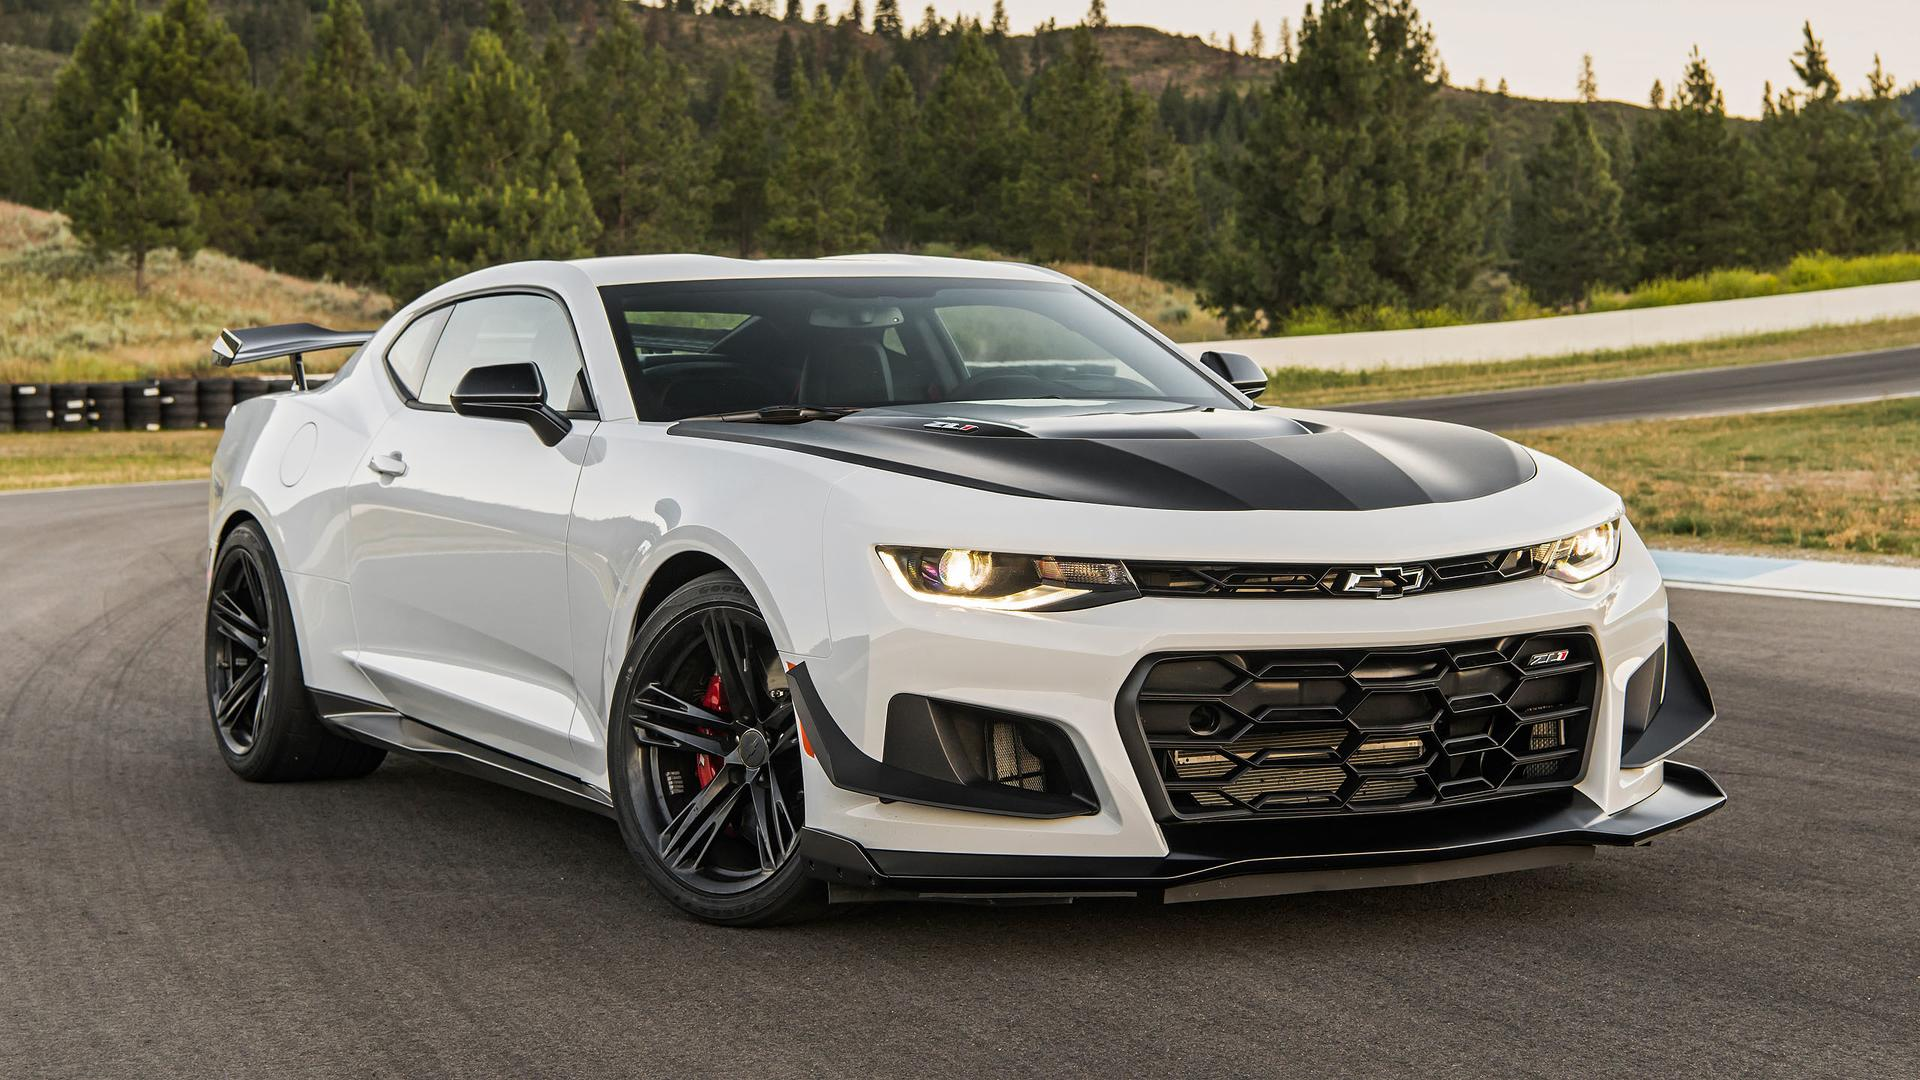 2018 Chevy Camaro ZL1 1LE First Drive Best The Breed